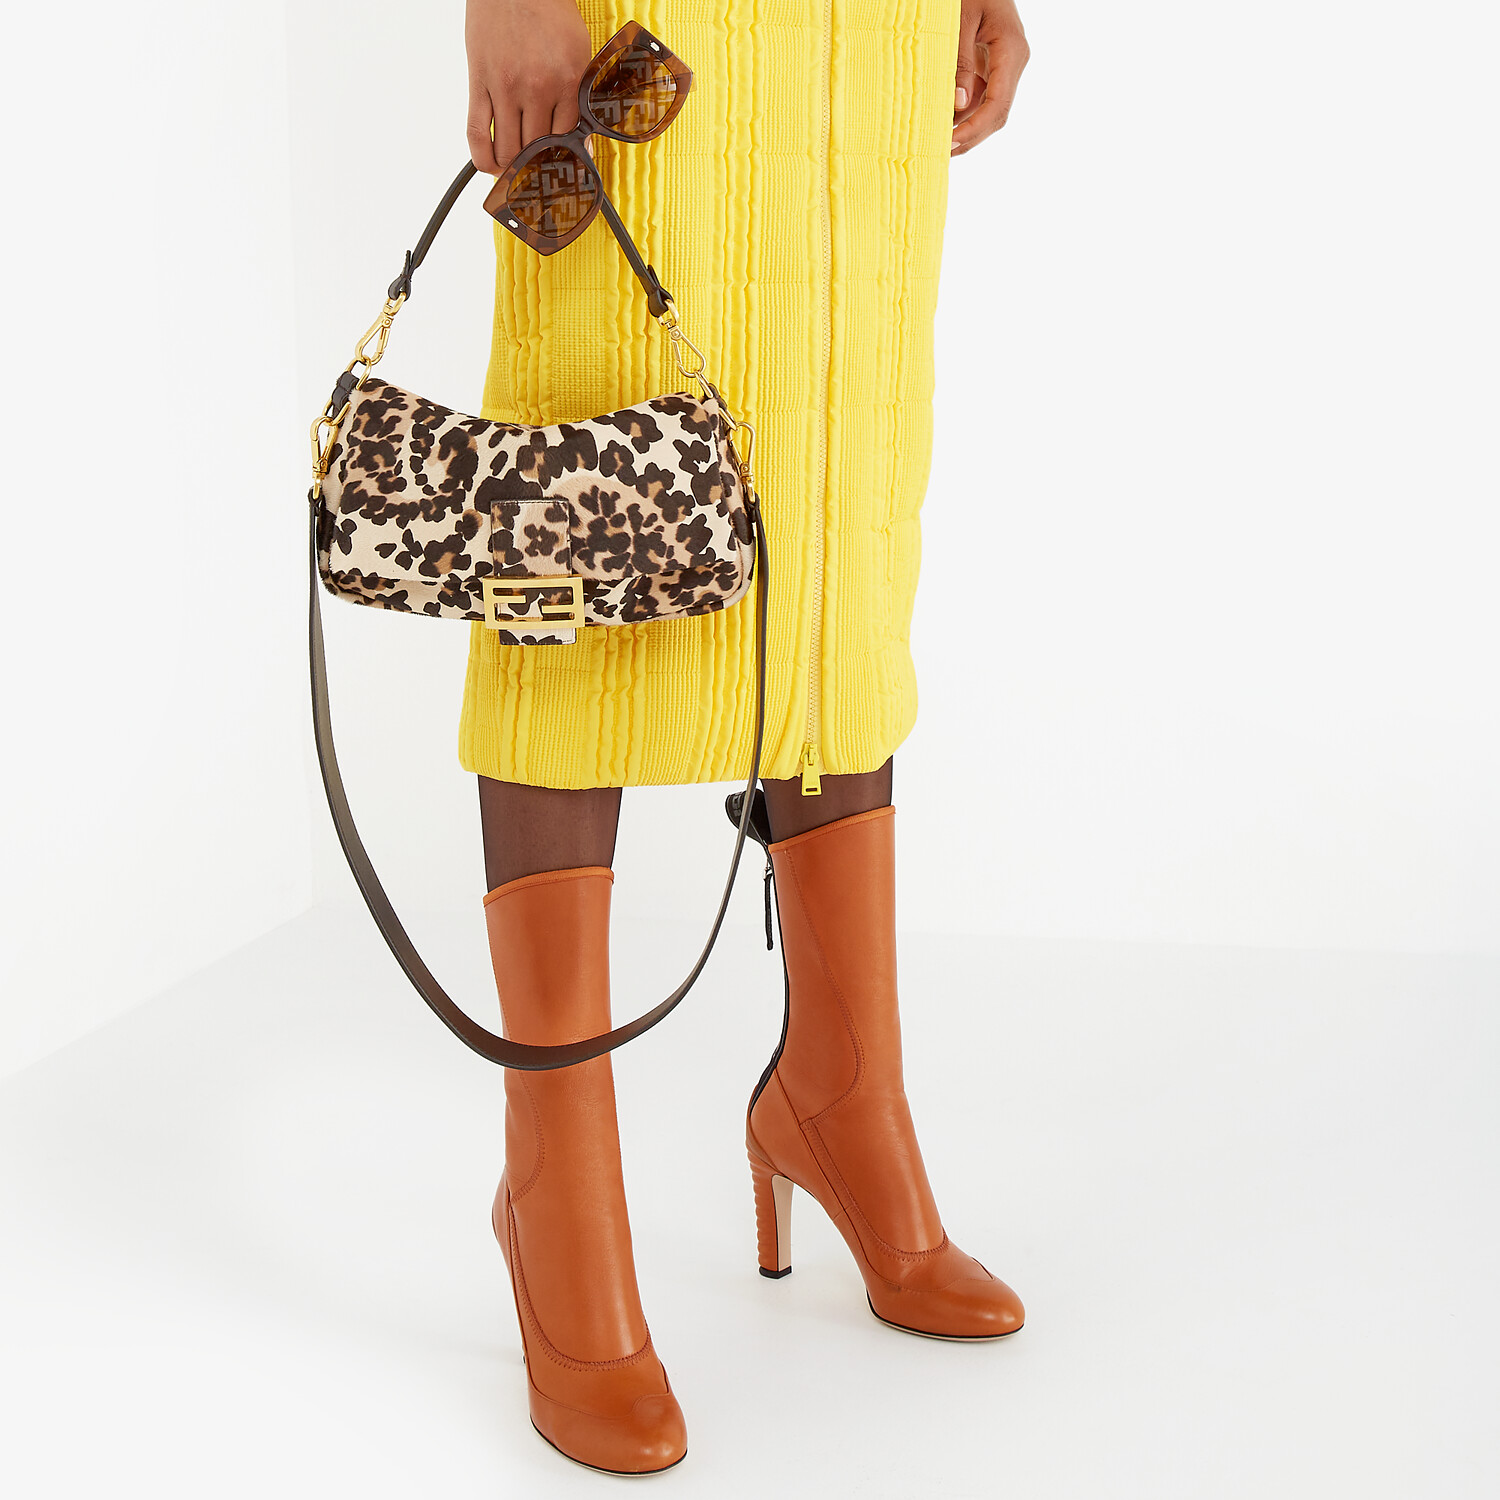 FENDI ANKLE BOOTS - Brown leather Promenade Booties - view 5 detail